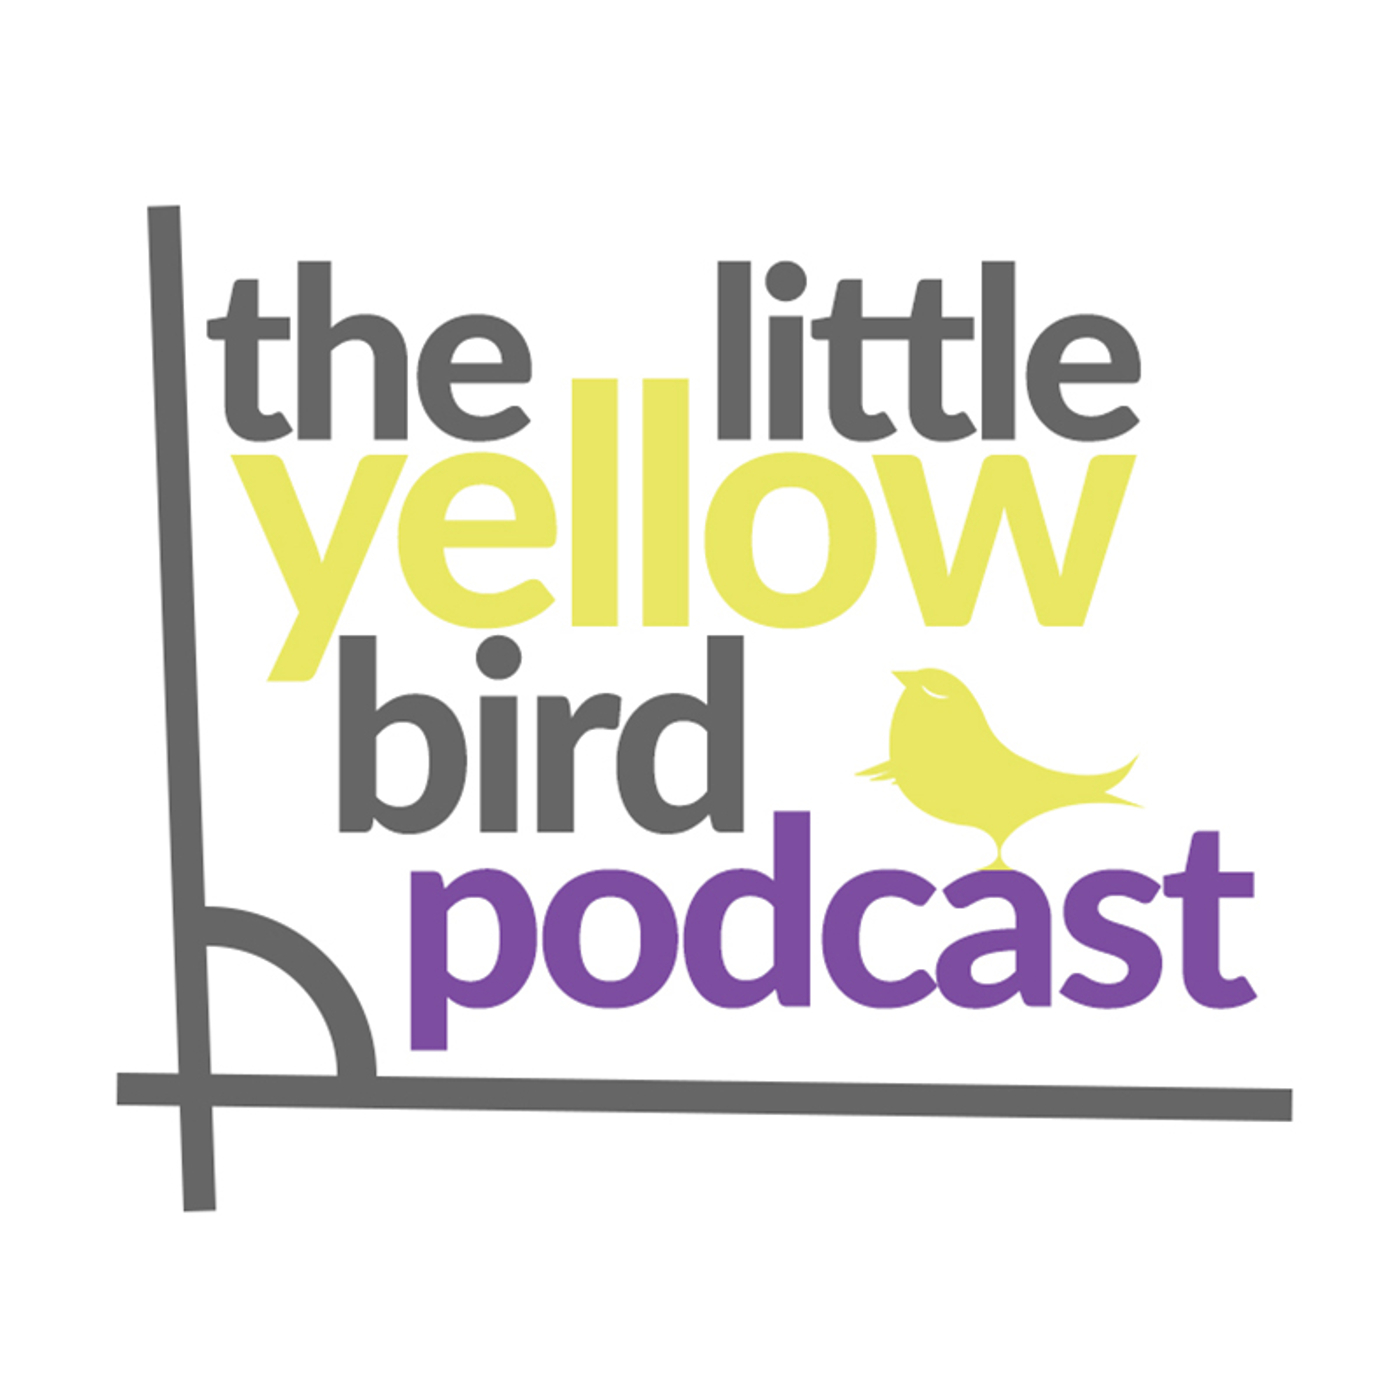 The Little Yellow Bird Podcast